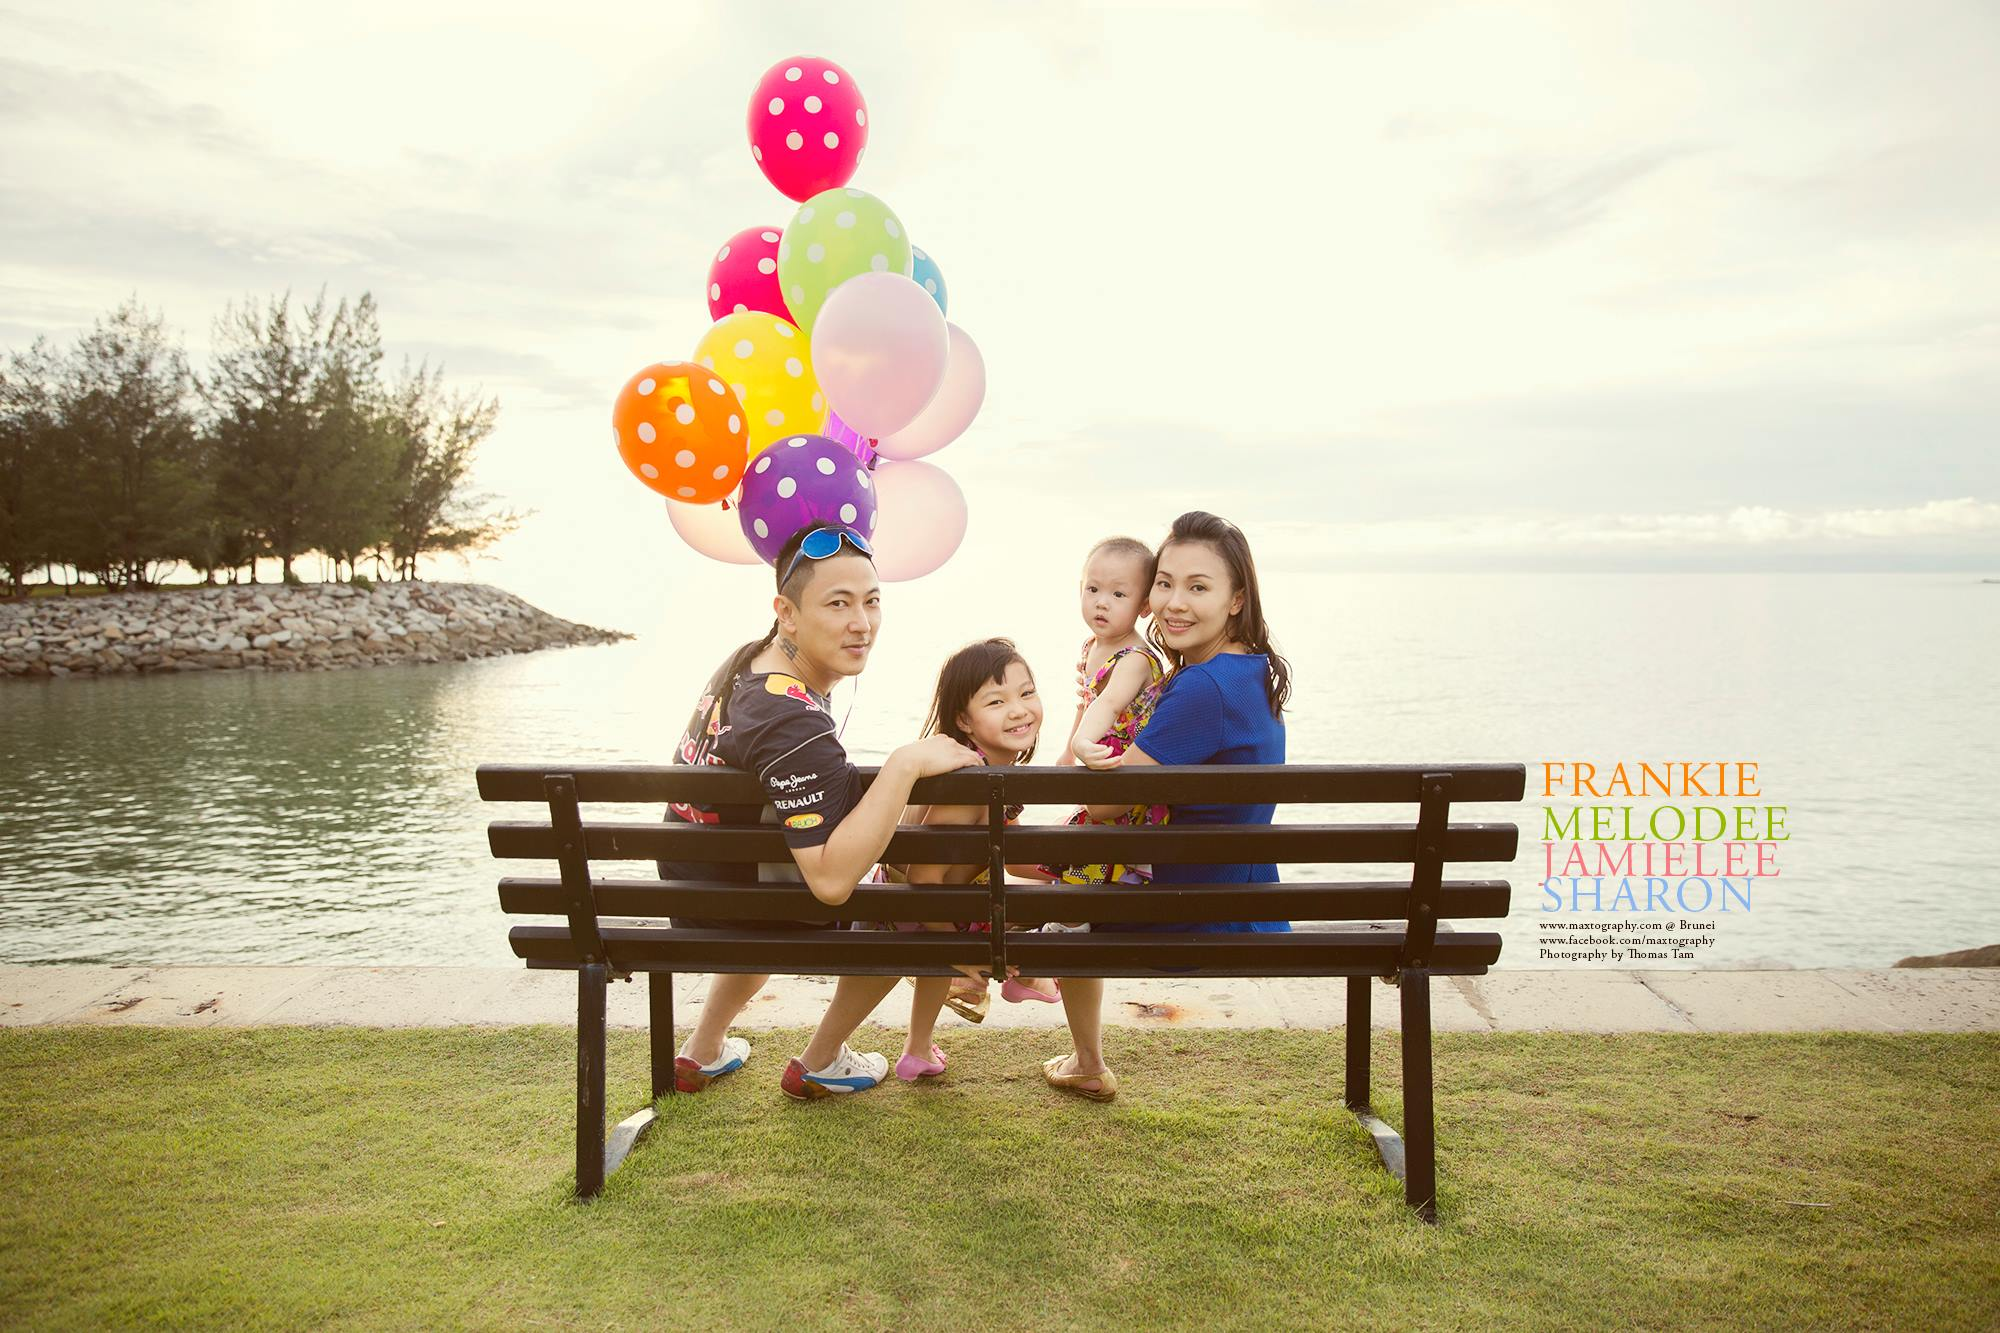 family with balloon